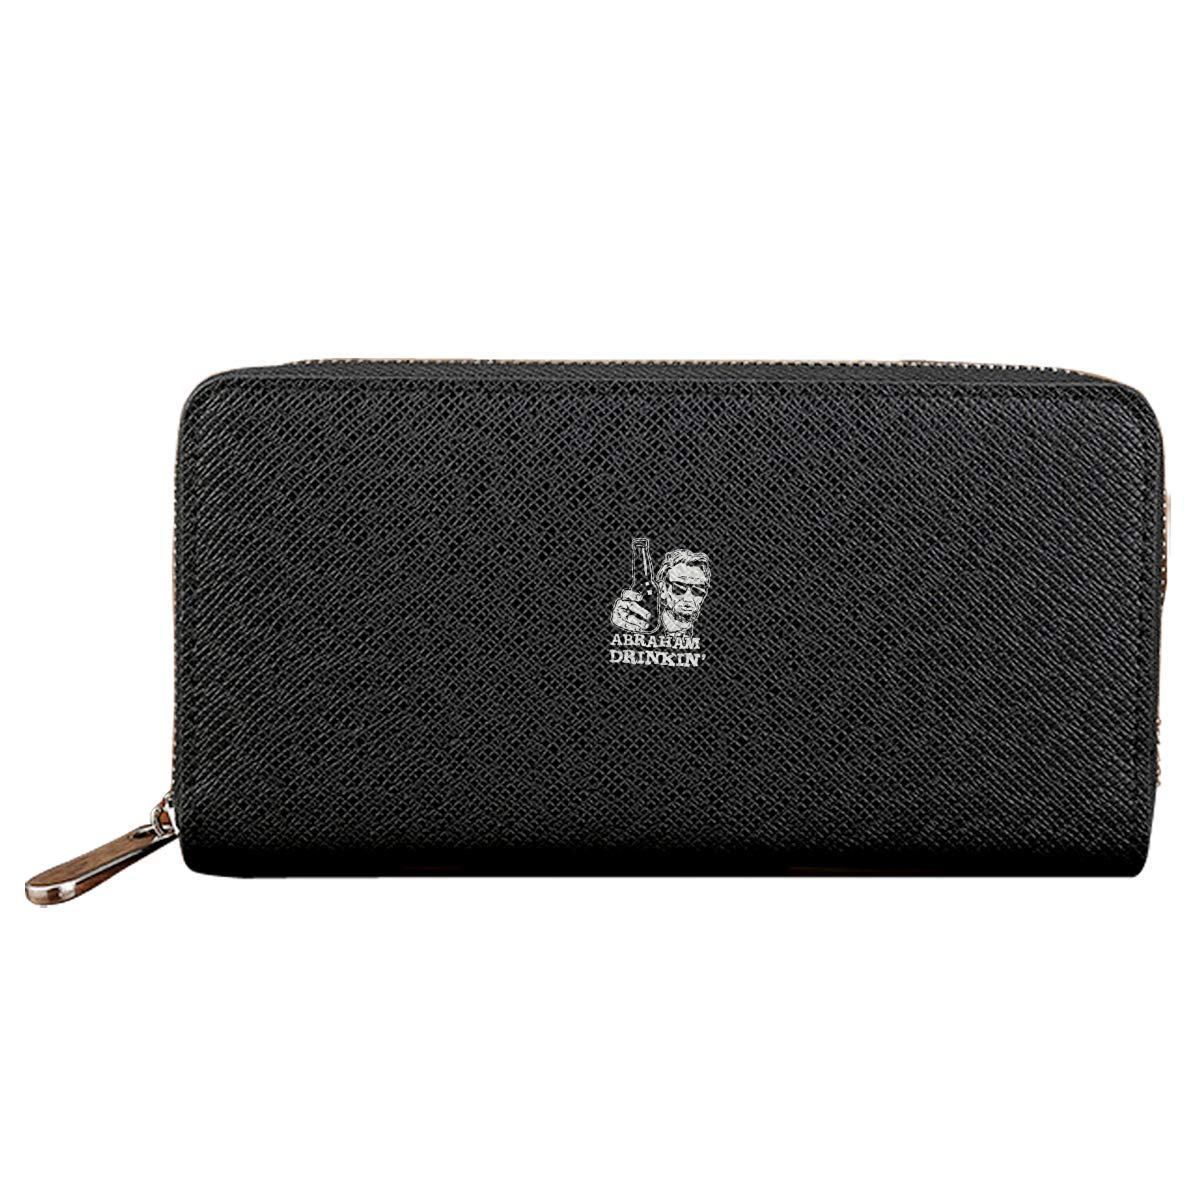 Abraham Drinkin Credit Card With Zipper Wallet Business Casual Hand Wallet